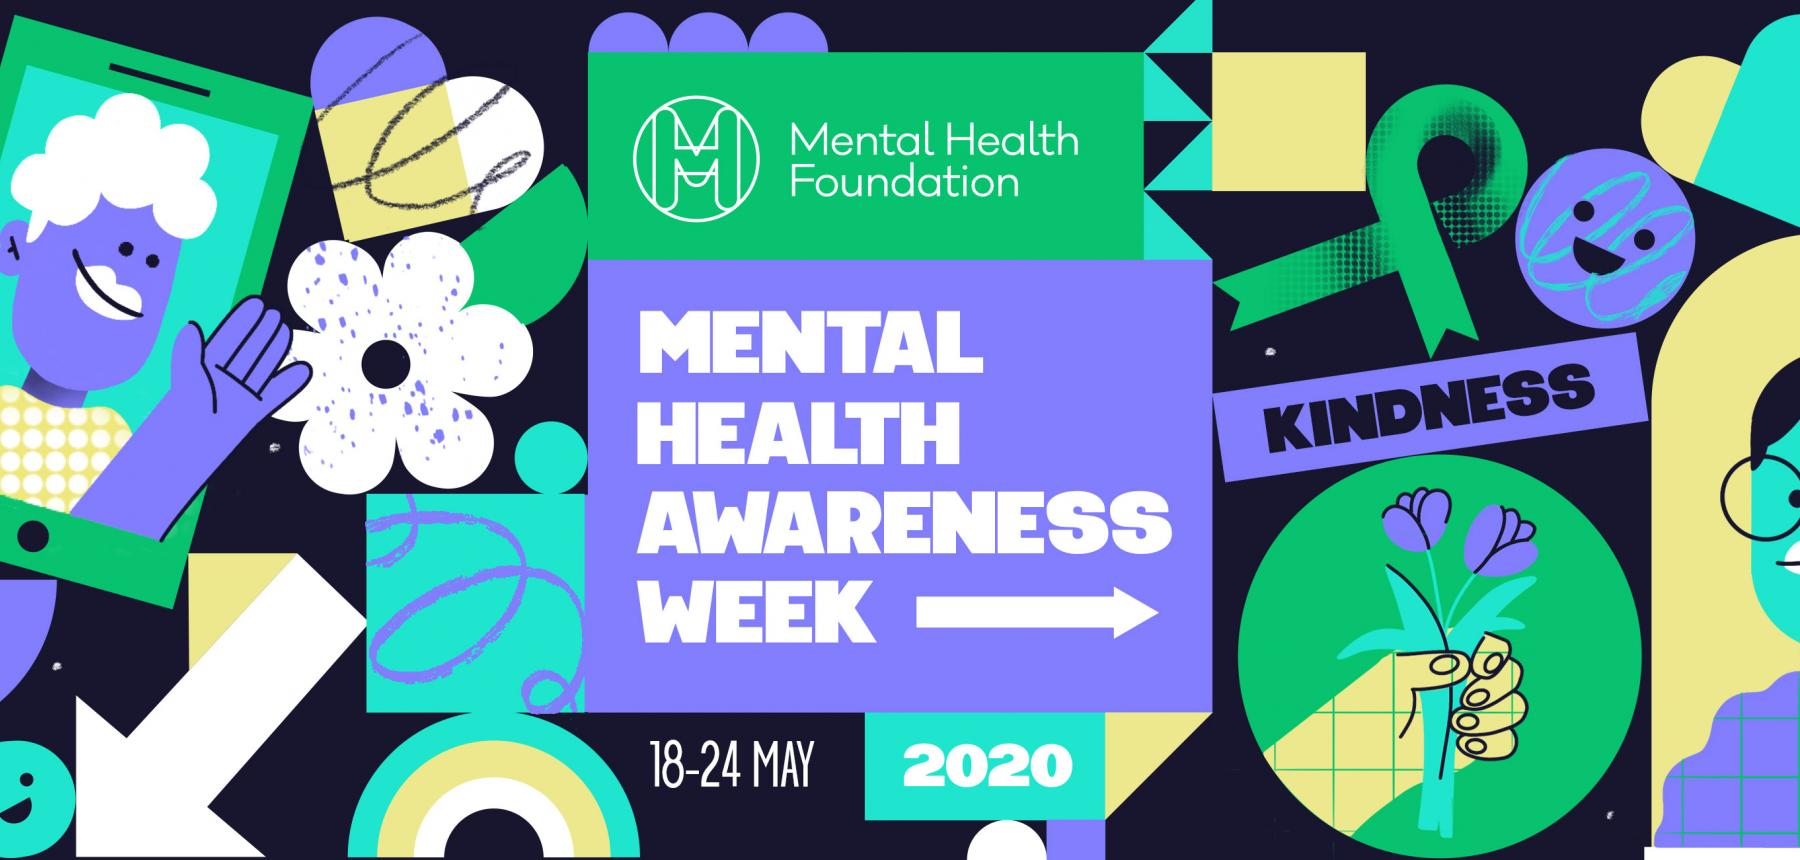 Mental Health Awareness Week 2020 Banner #KindnessMatters